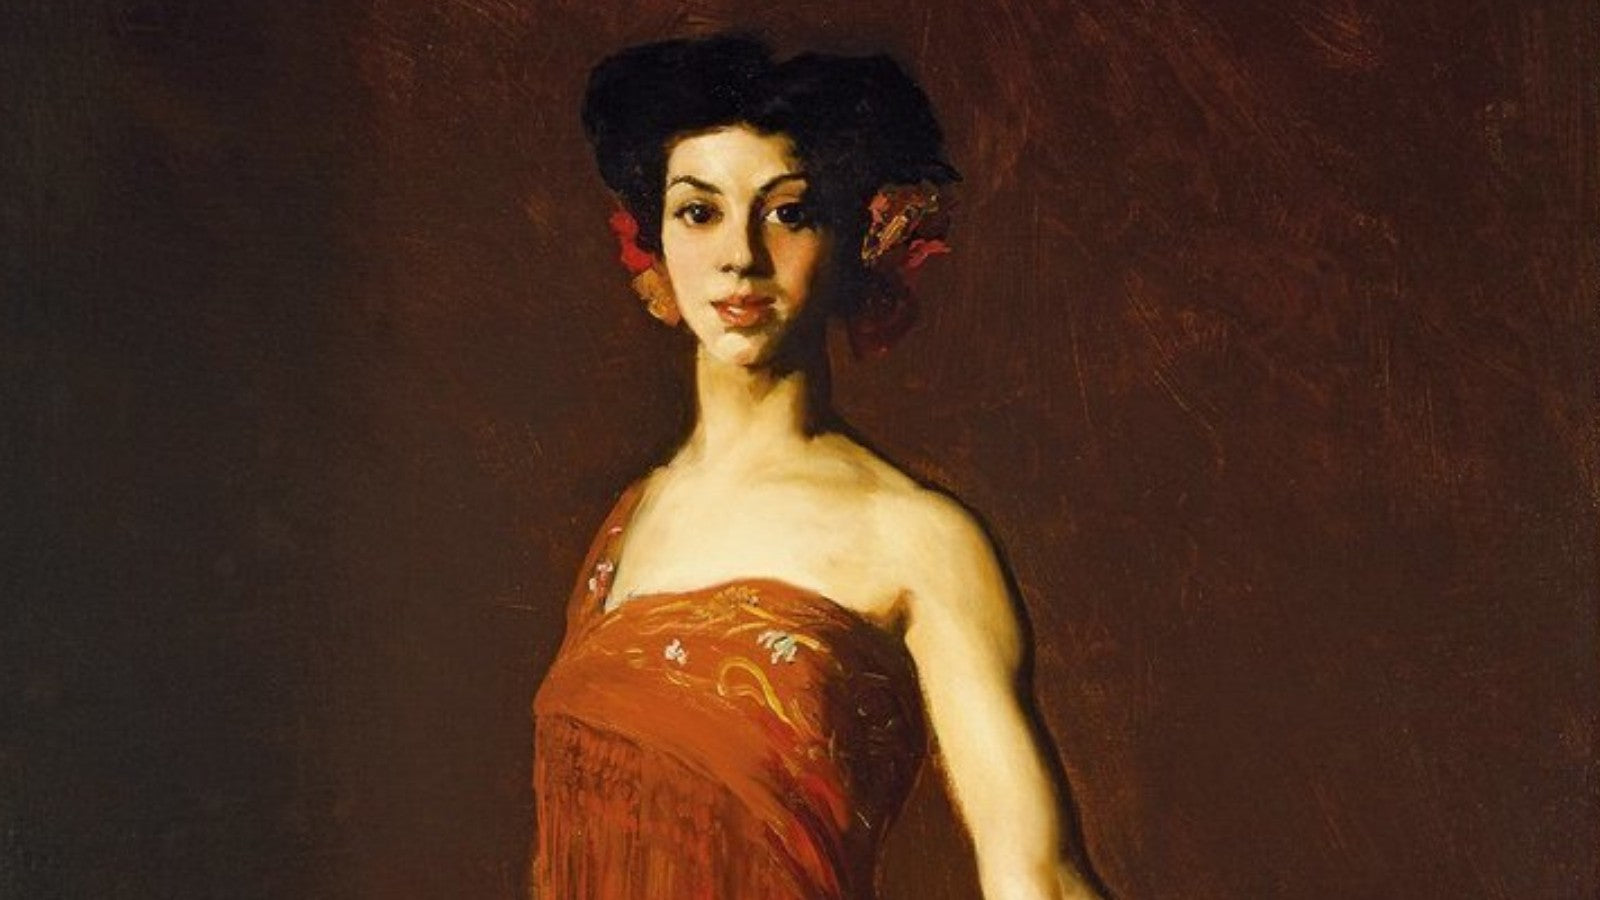 Seviliana (Dancer with Castanet) painting by Robert Henri (1904)